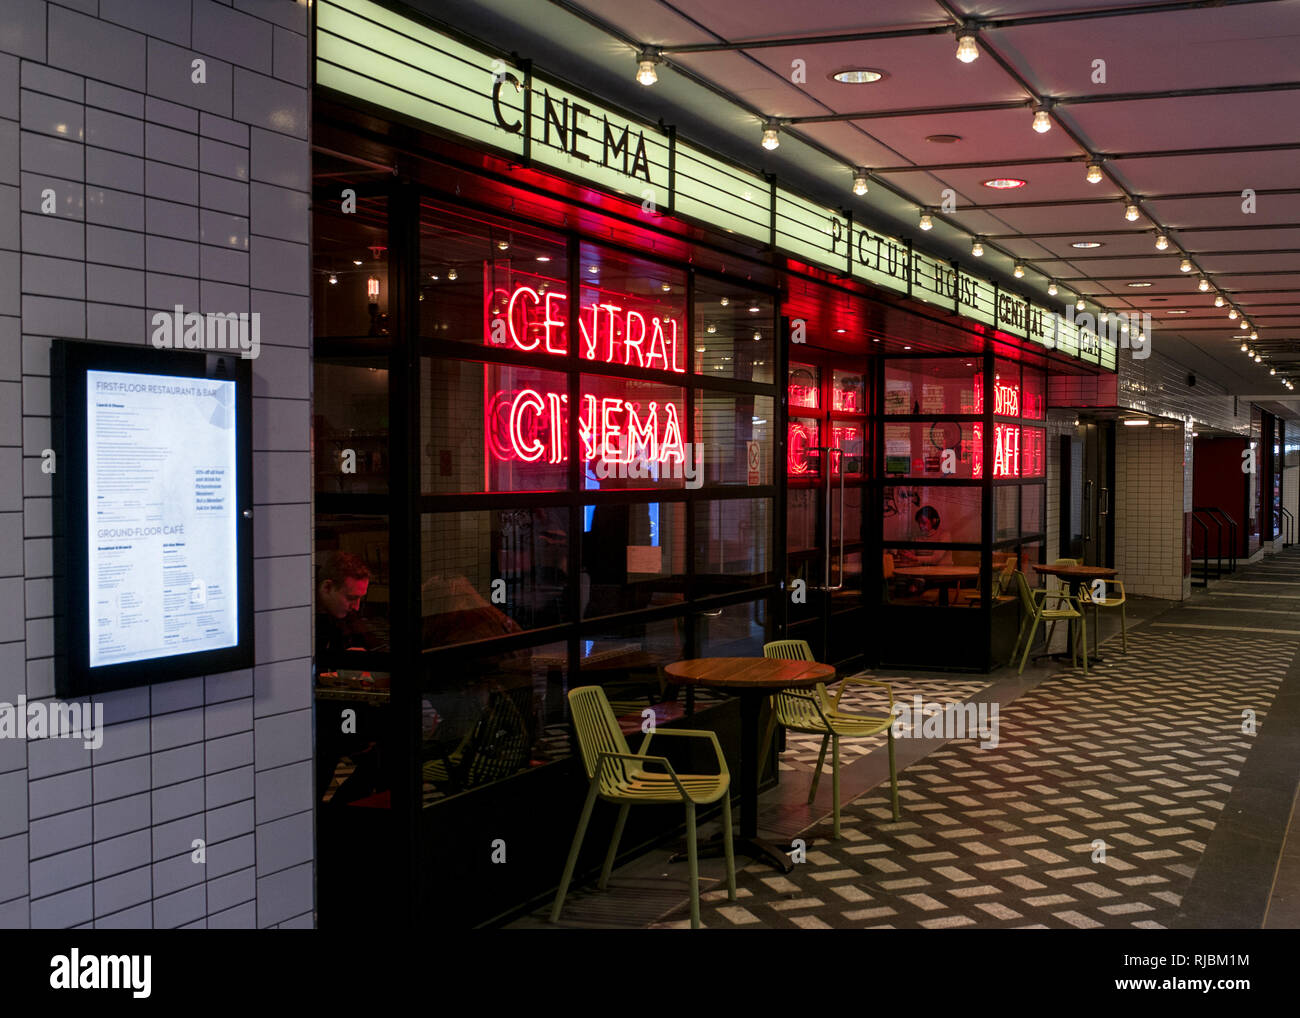 neon signage at the new entrance of the Picture House Central Cinema near Piccadilly Circus in London.Picture house cinema soho. - Stock Image